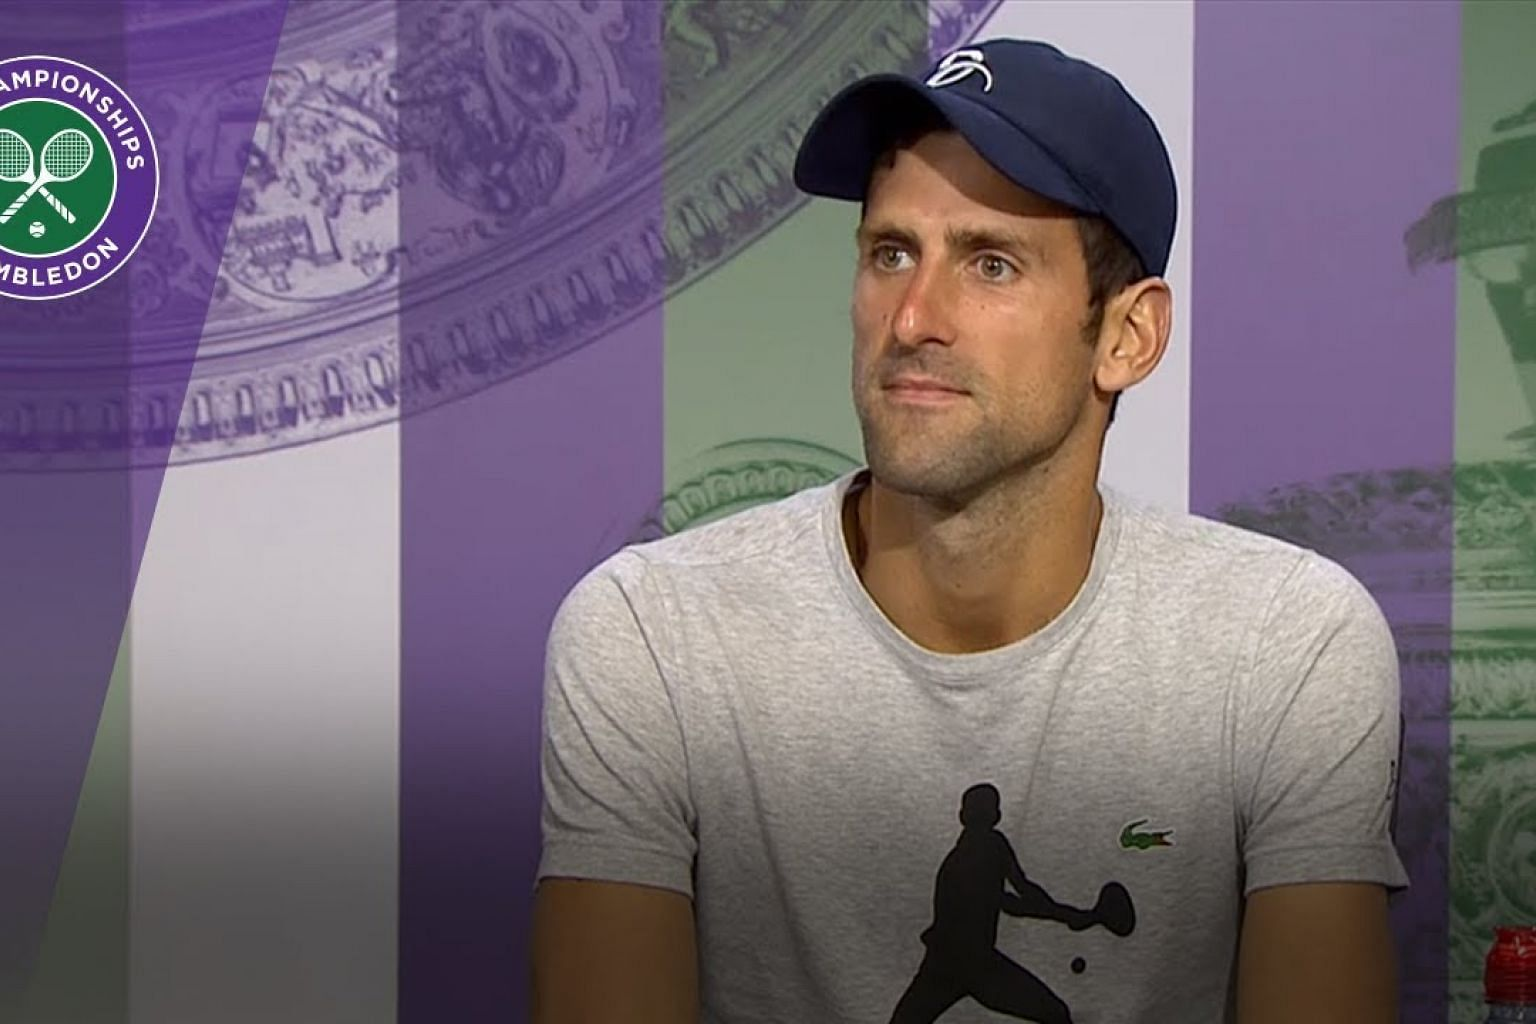 Novak Djokovic 'there have been moments of doubt'